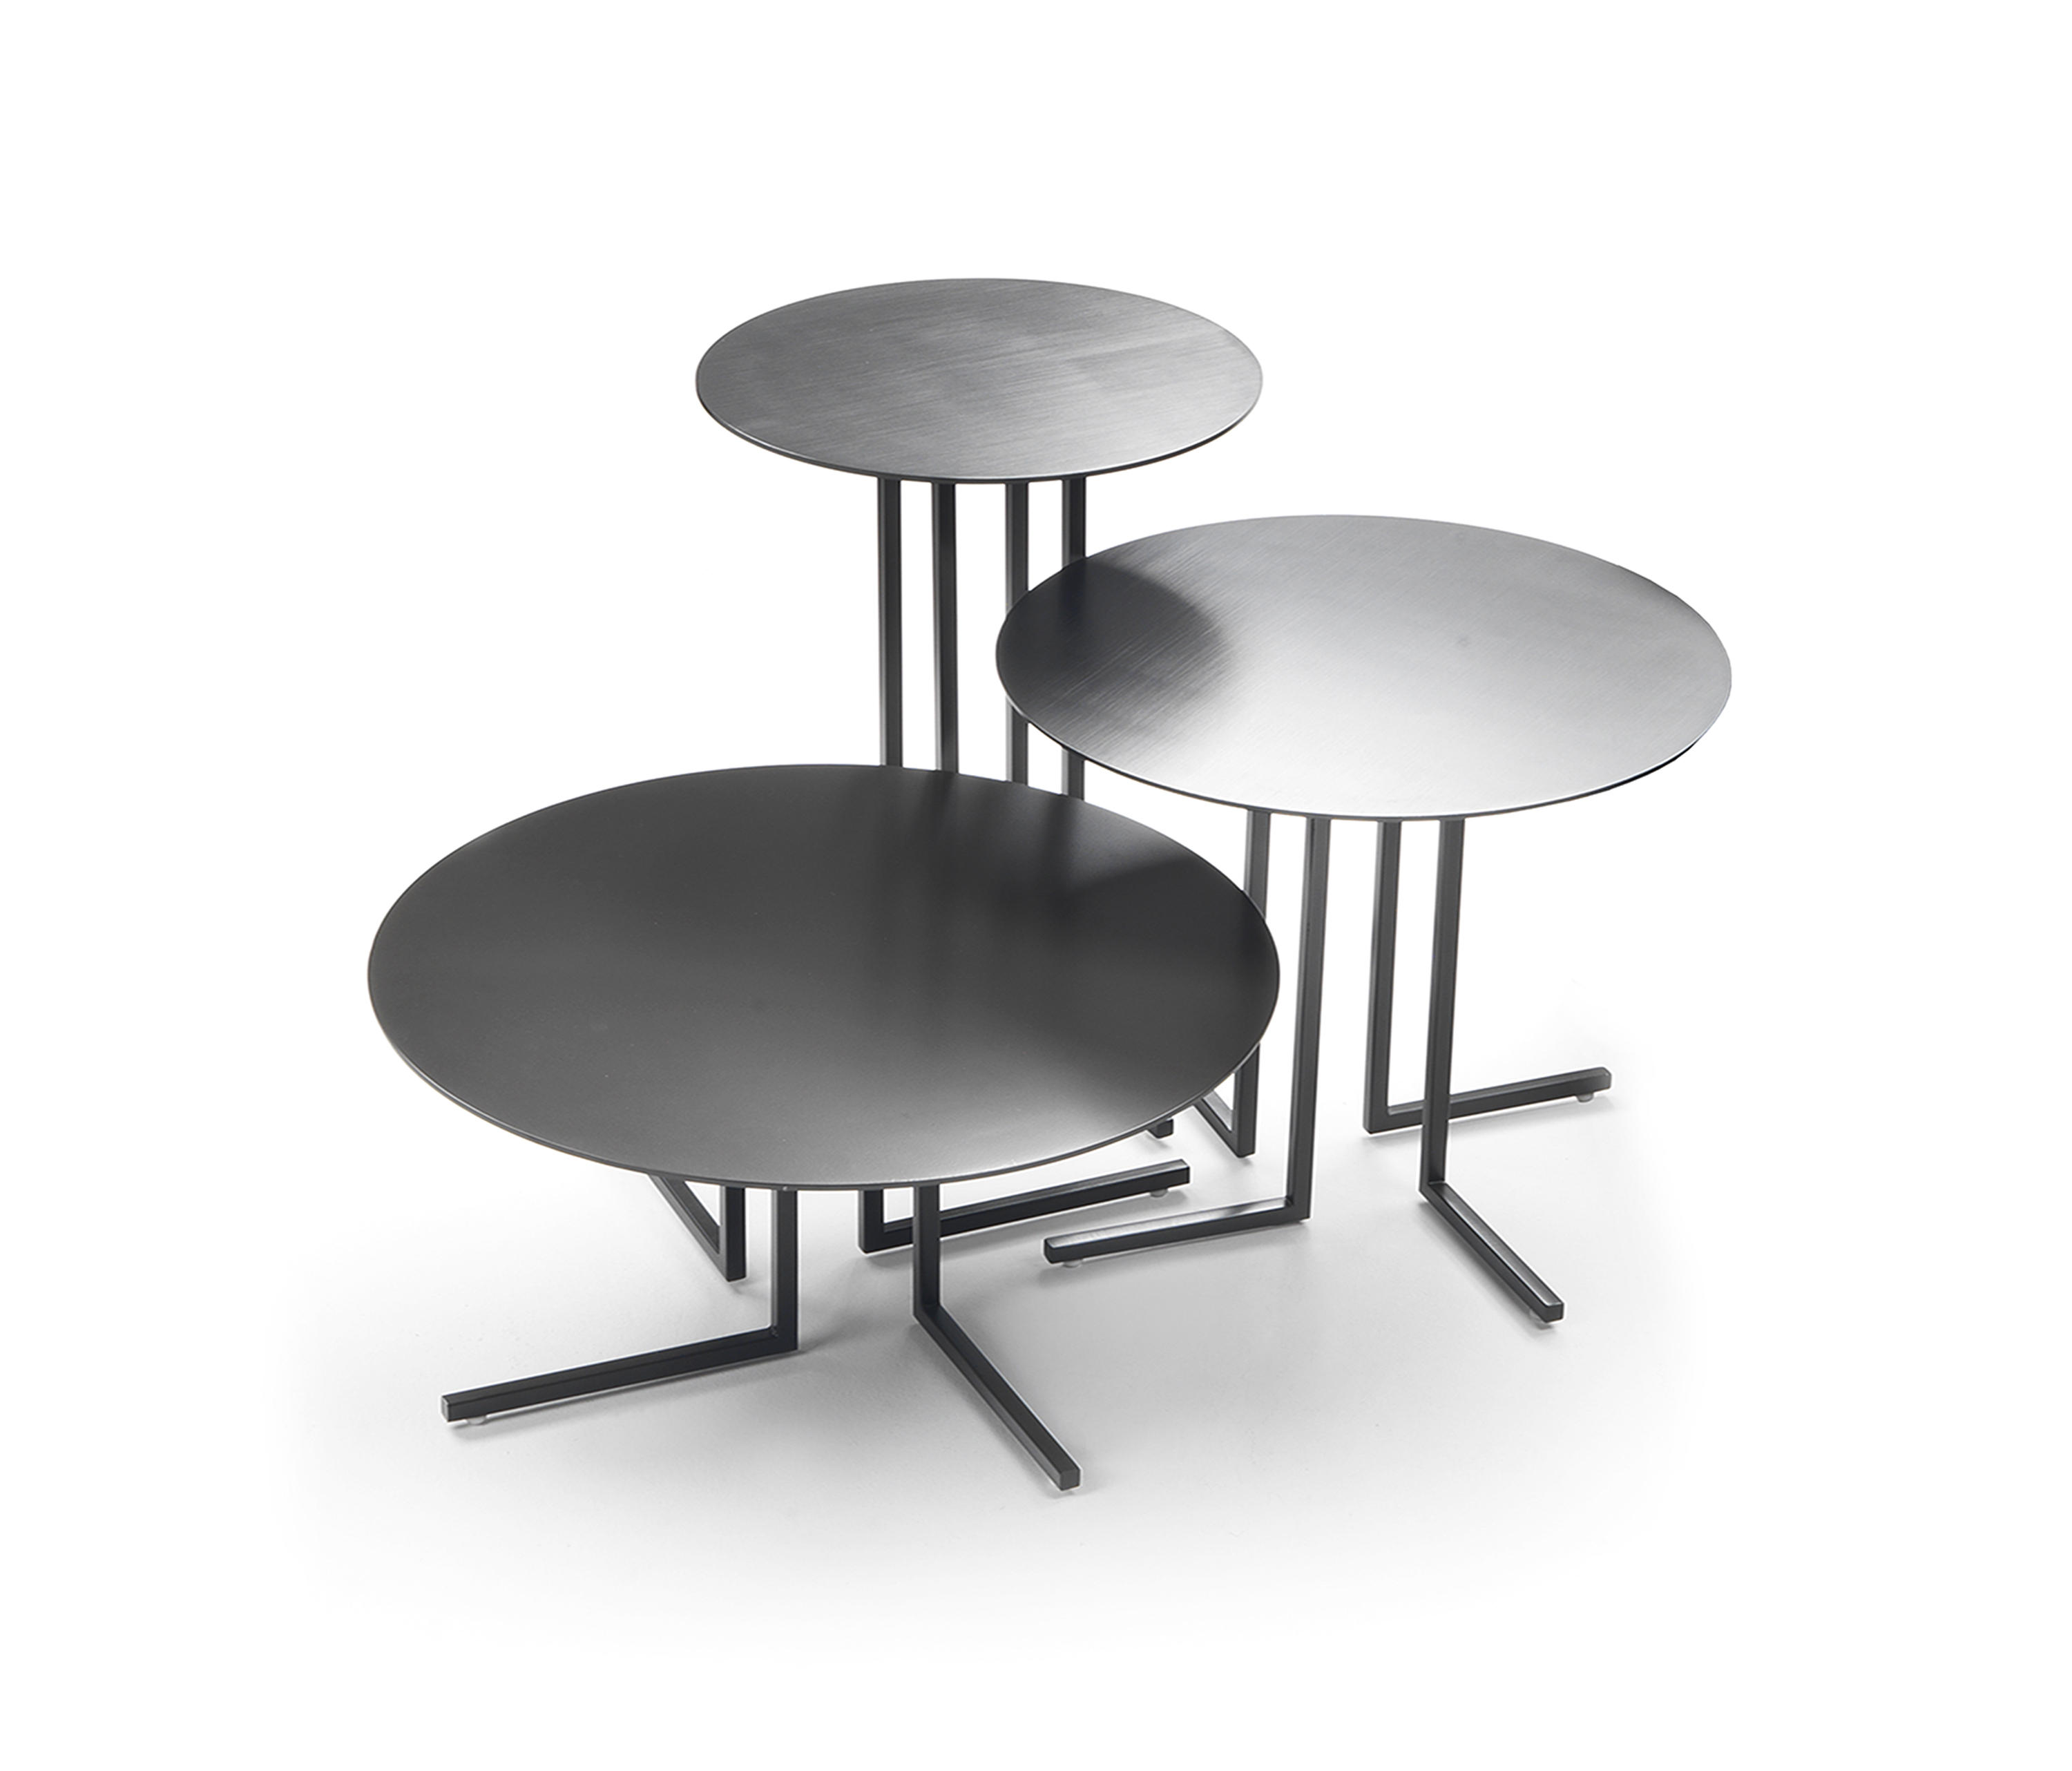 ELLE Side tables from Marelli